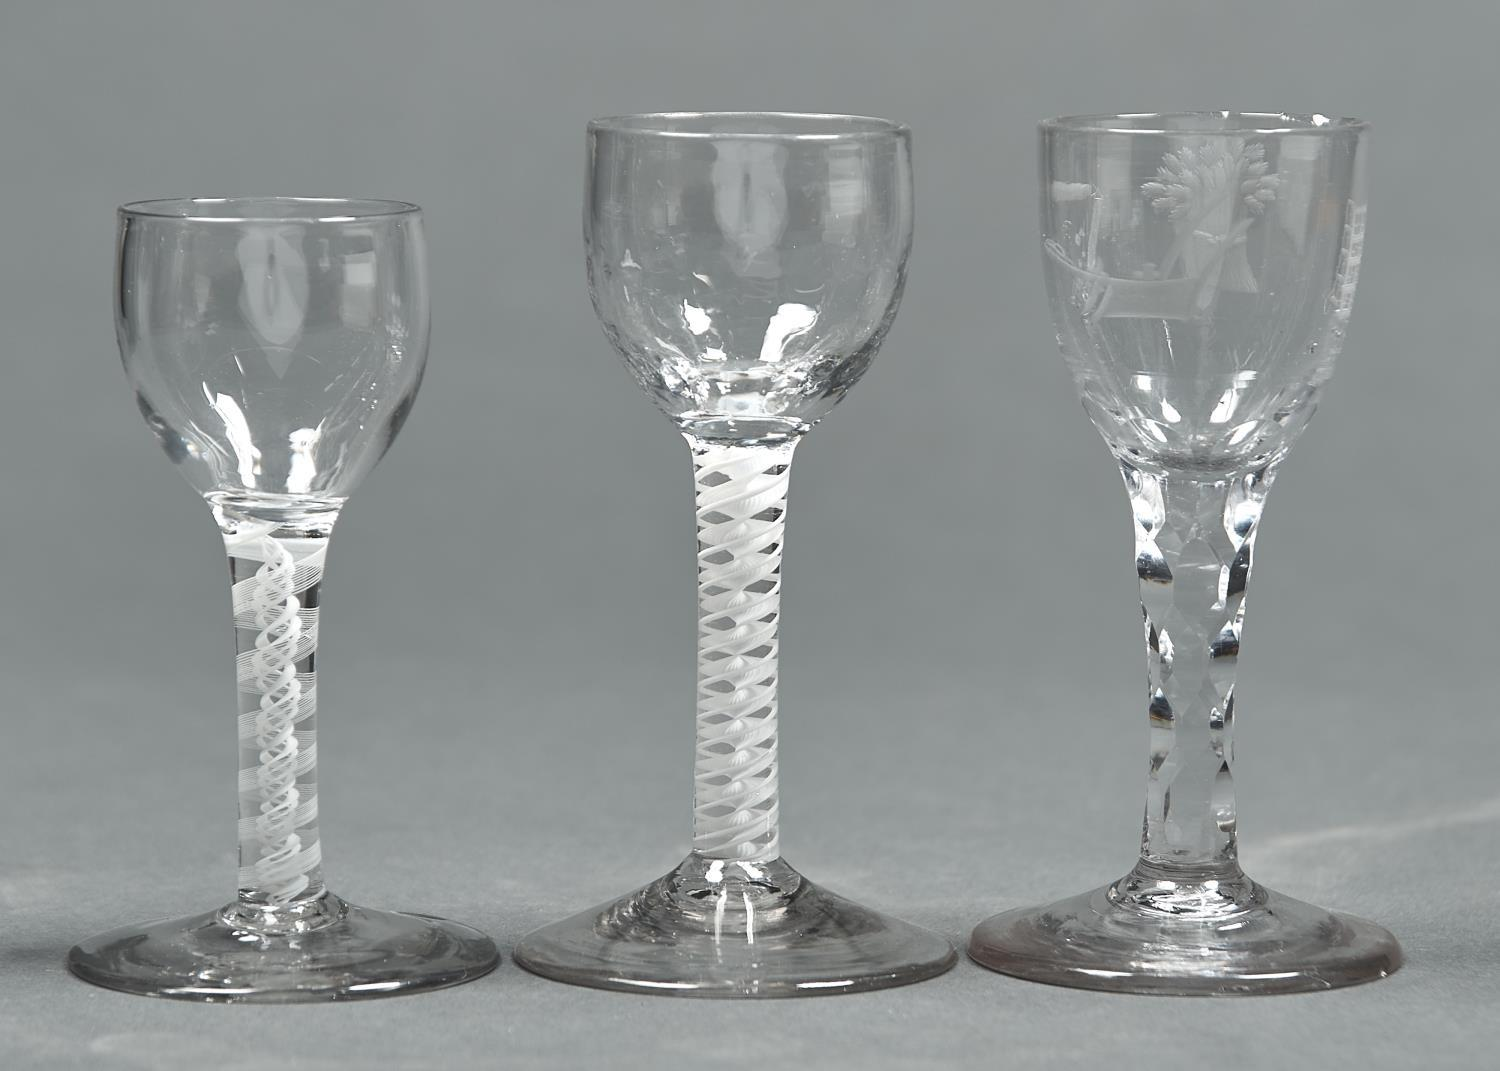 THREE ENGLISH DRINKING GLASSES, C1770, COMPRISING A FACETED STEM GLASS, THE OVOID BOWL ENGRAVED WITH